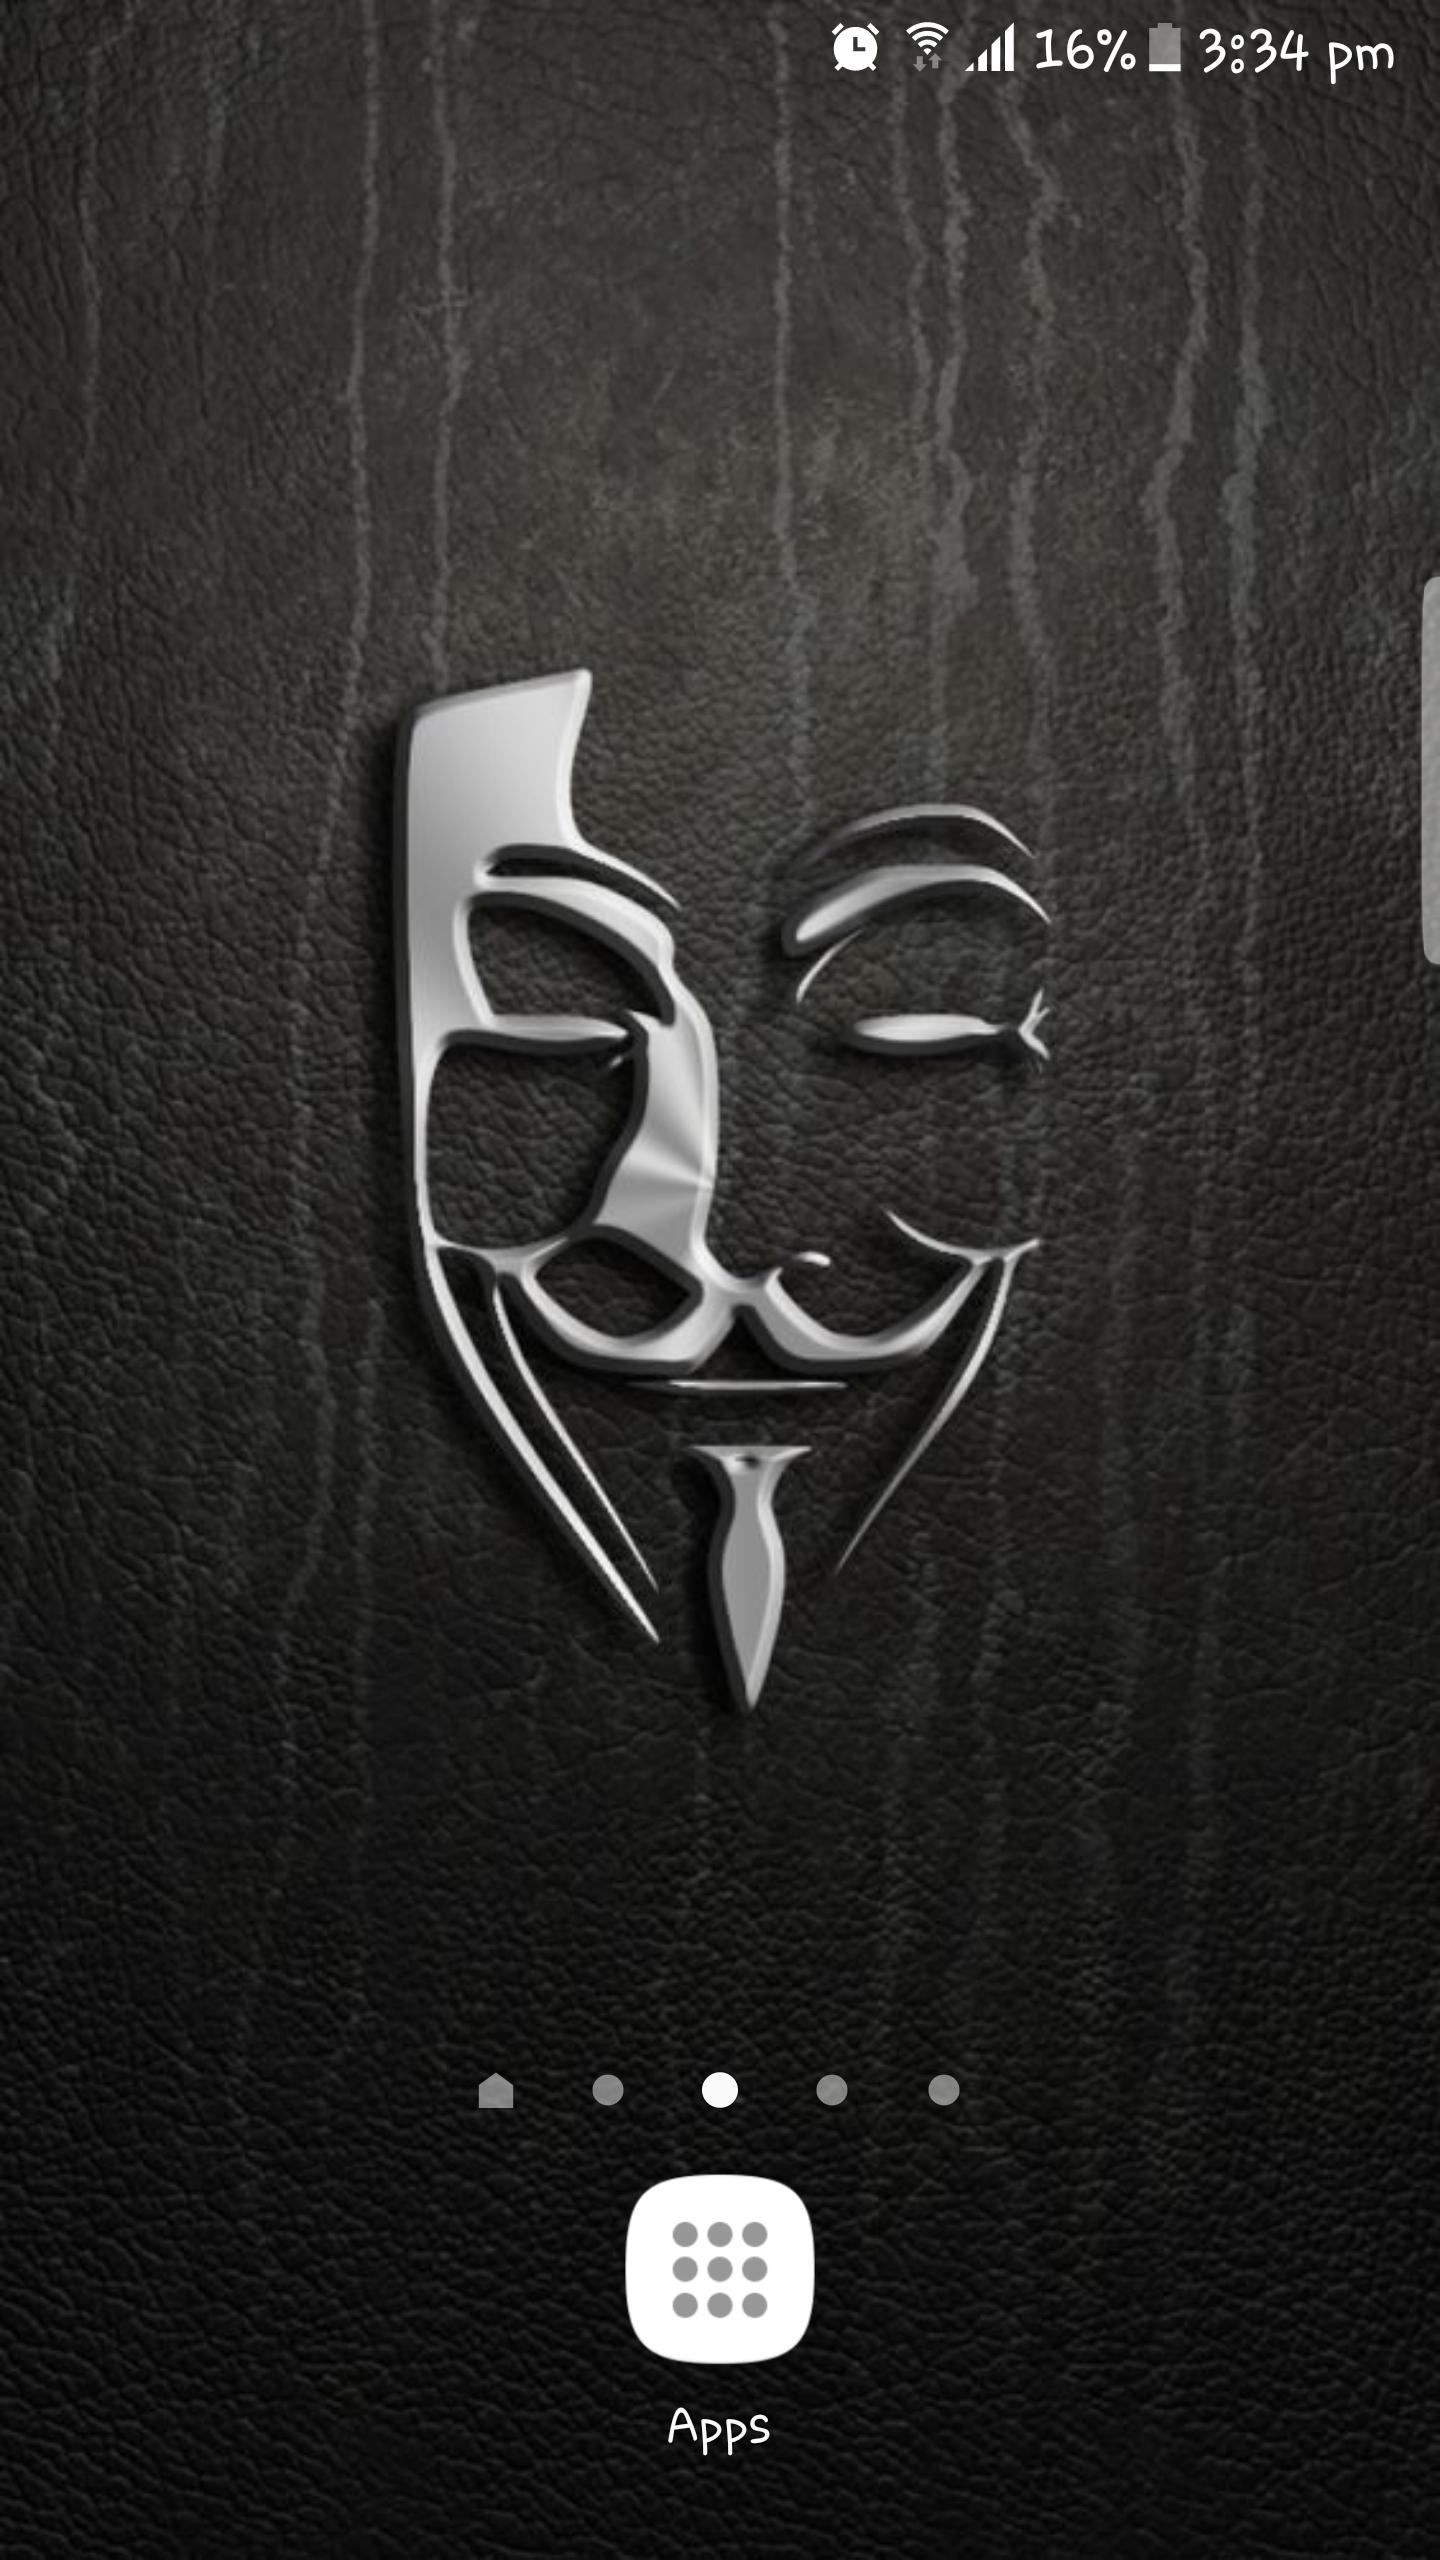 Best Anonymous Wallpaper Hd 4k For Android Apk Download